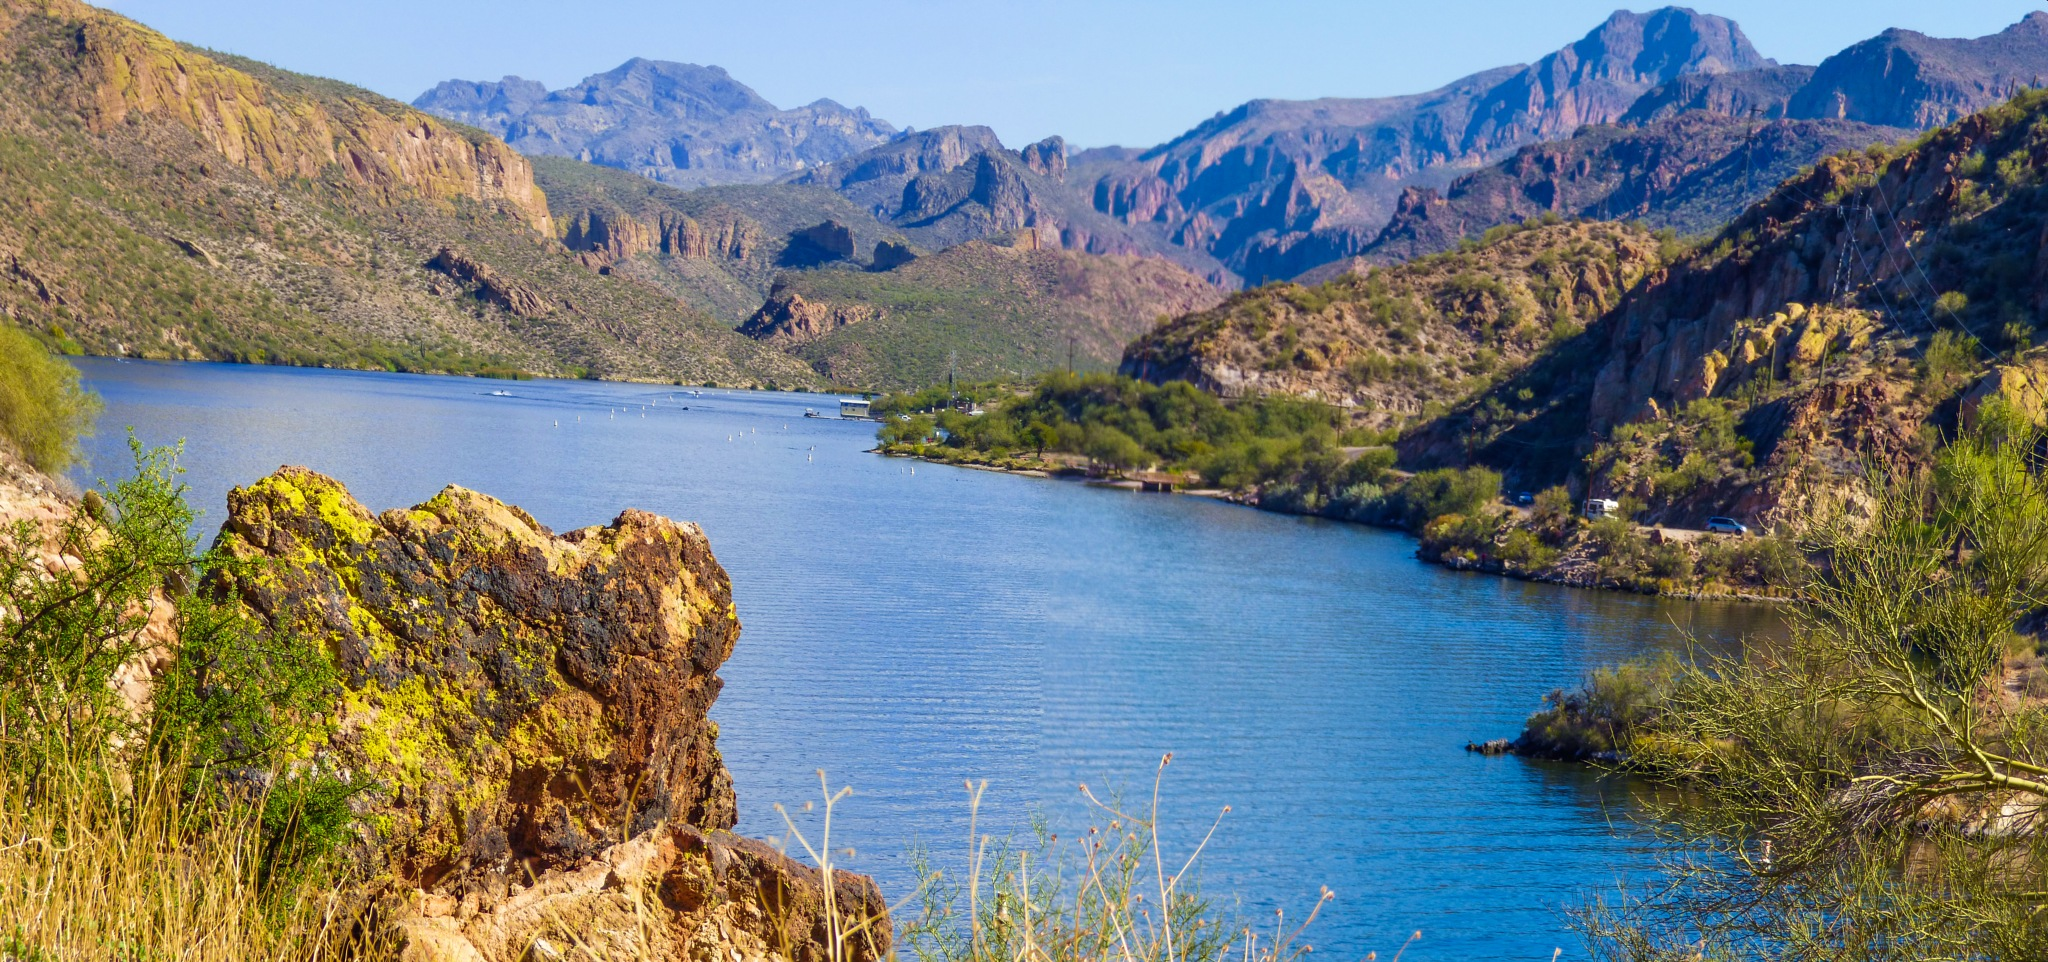 The Southern End of Canyon Lake, Arizona by OrcinusFotograffy